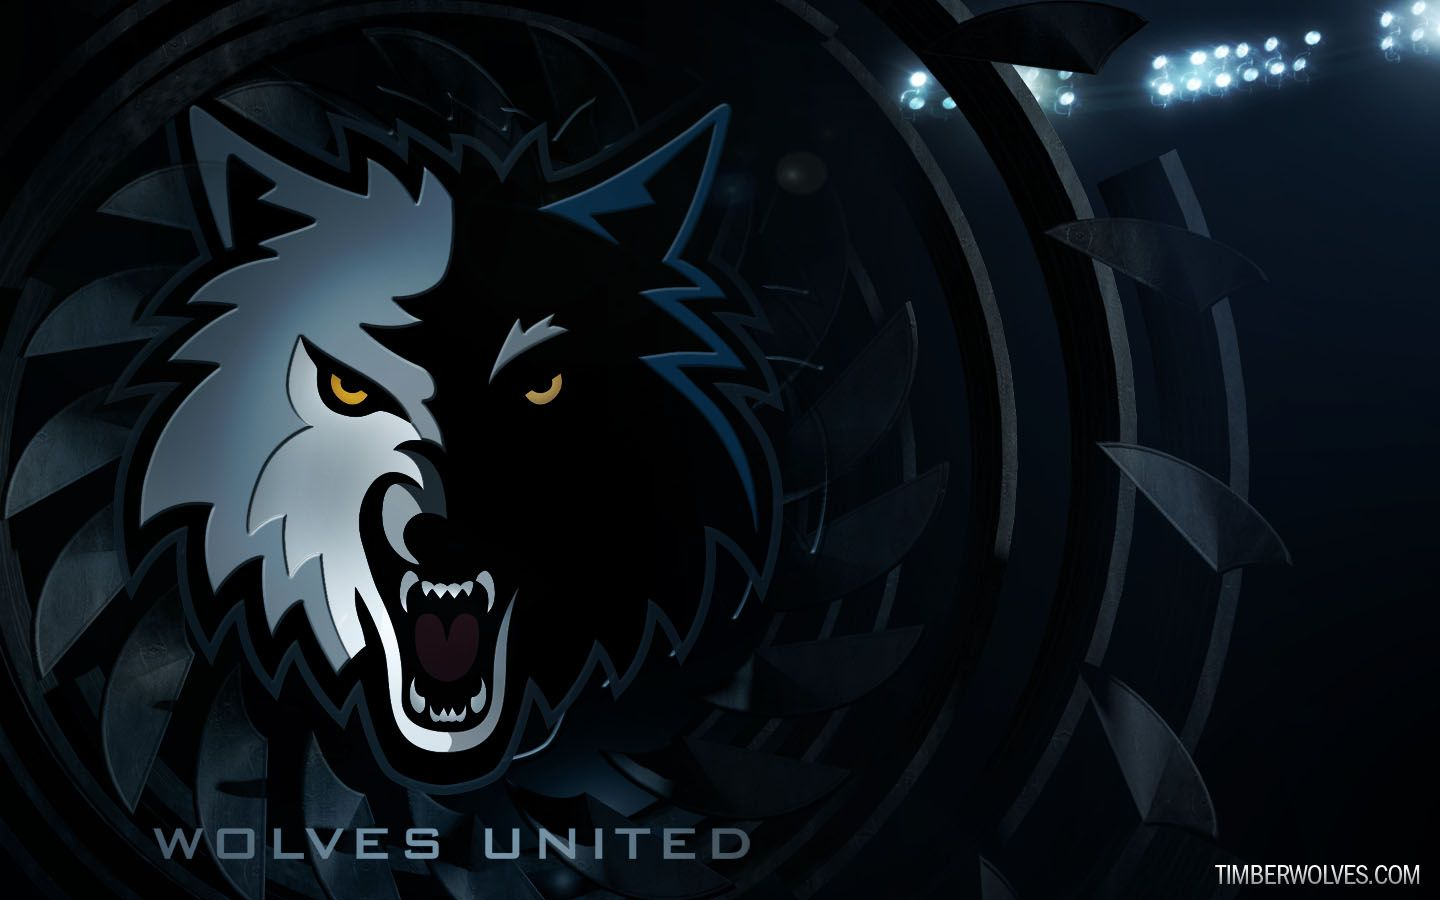 Minnesota Timberwolves Wallpaper #1 | Minnesota Timberwolves | Pinterest